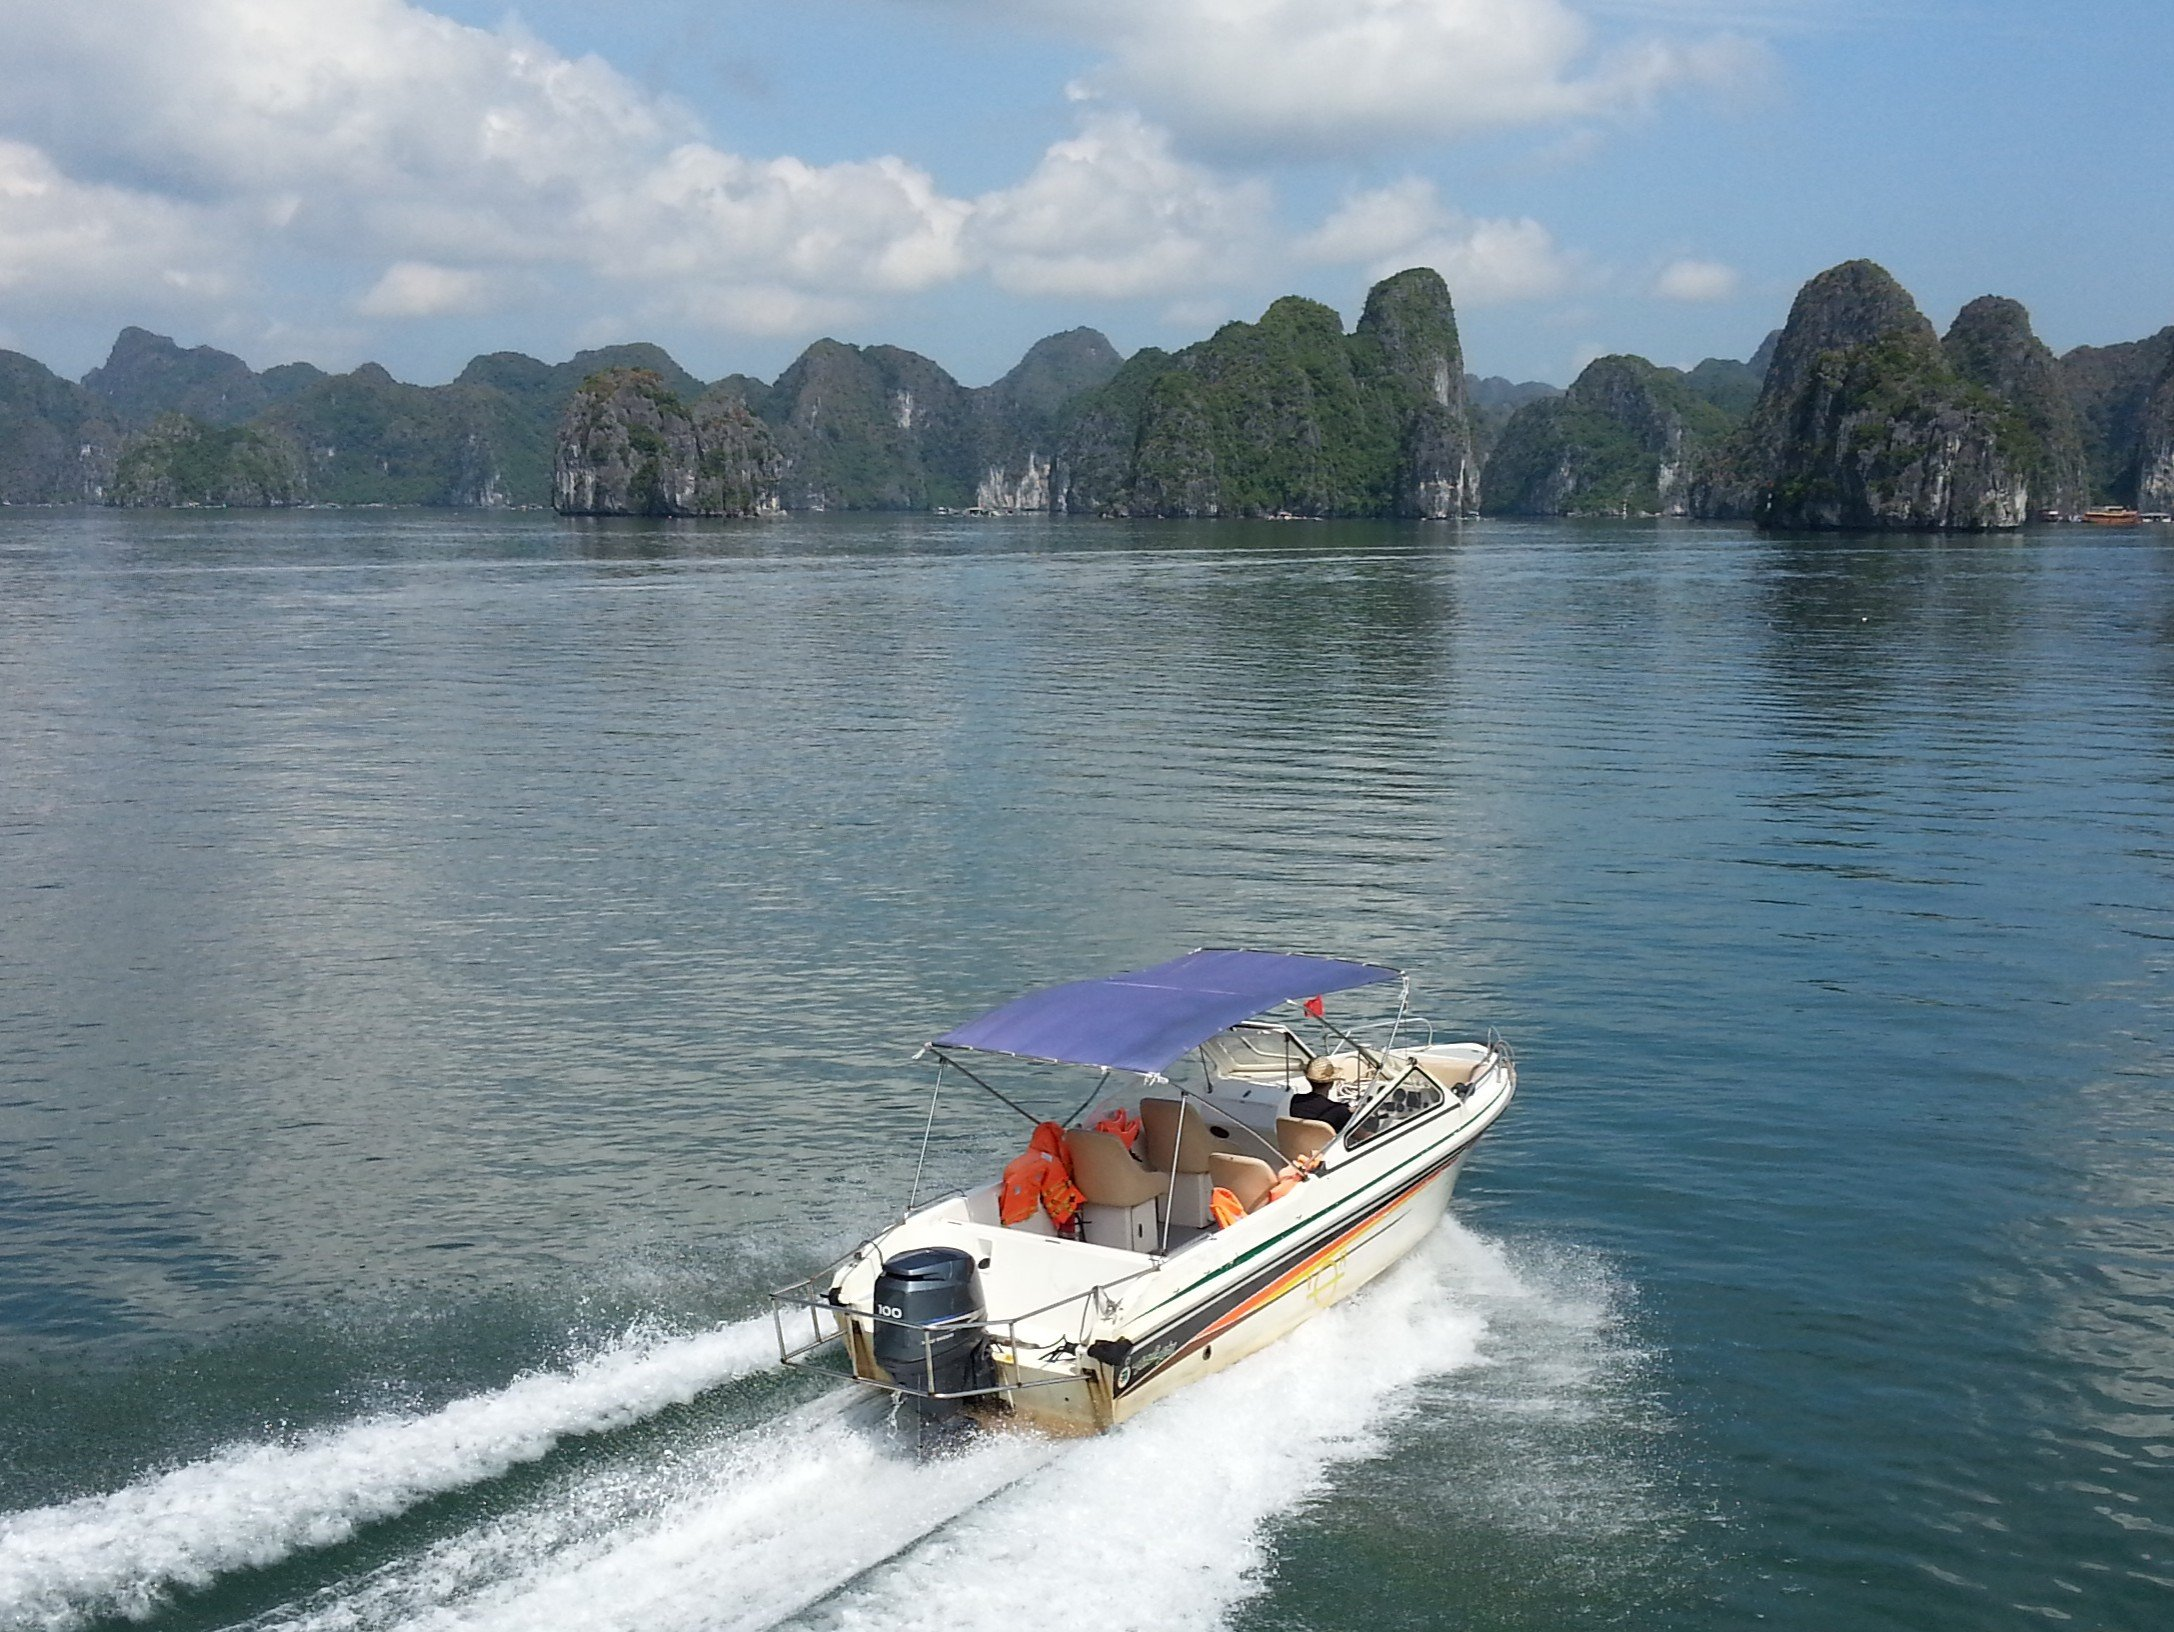 Boat trips around Ha Long Bay are very popular